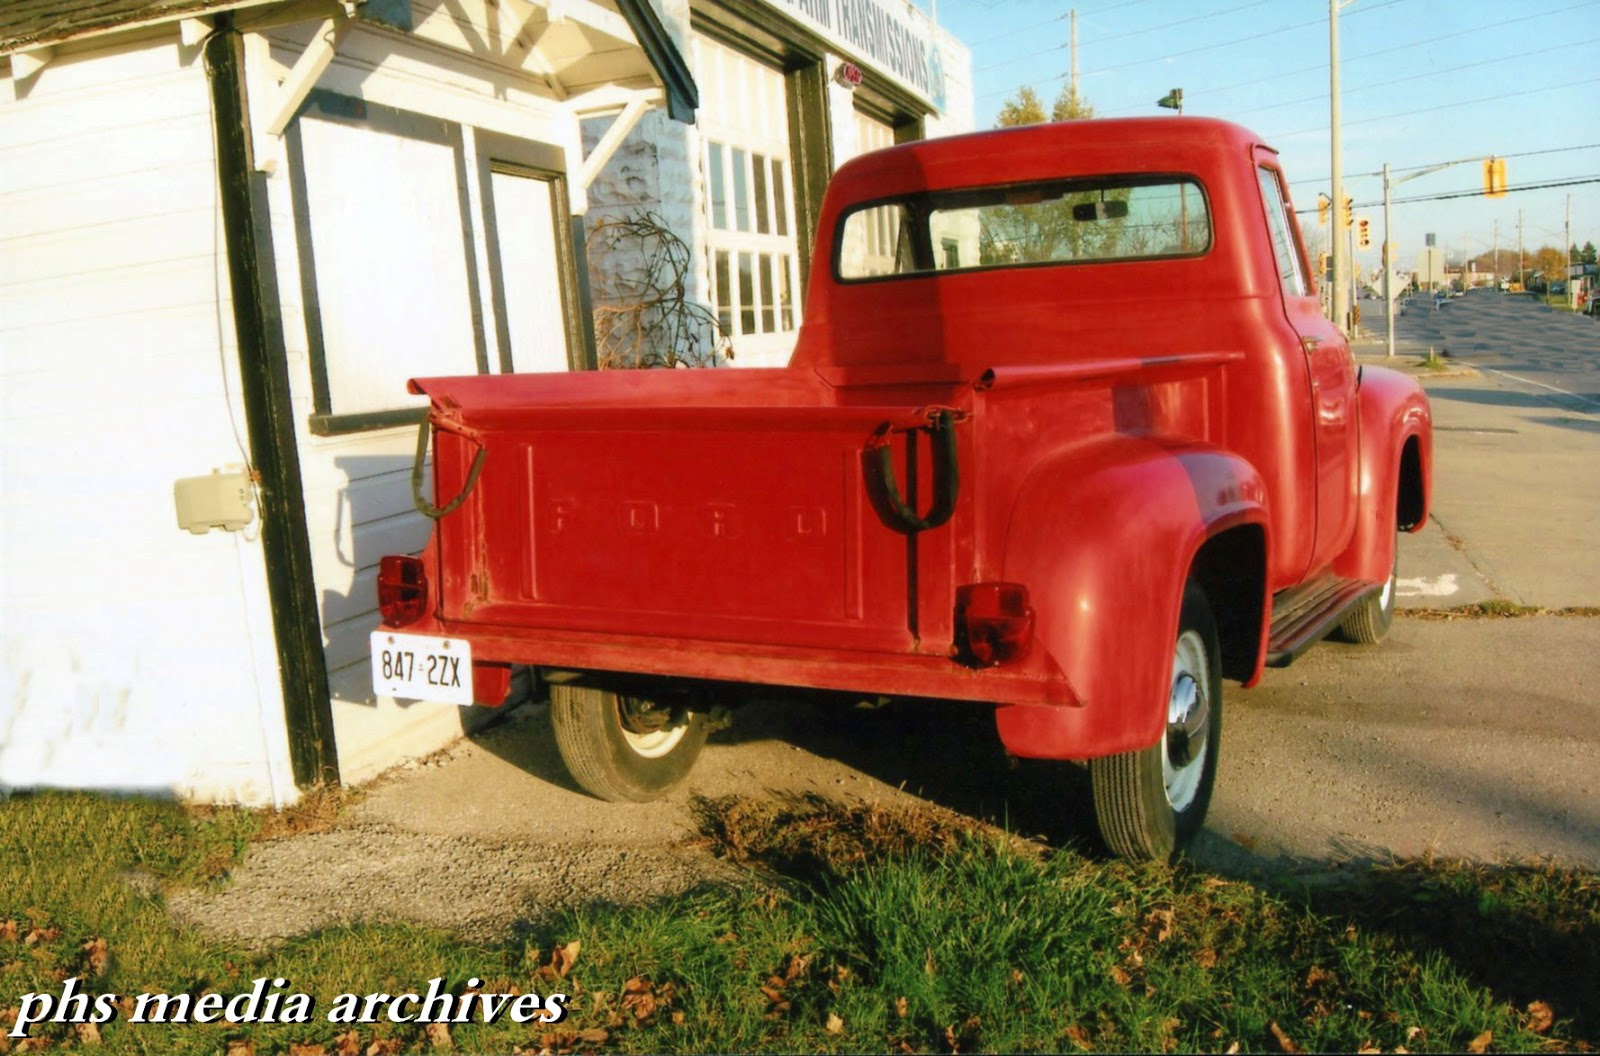 1954 Ford F100 Pick Up Le Shop Truck Phscollectorcarworld Pickup Sale Very Clean Condition Over All Without Cars On The Street This Could Almost Be